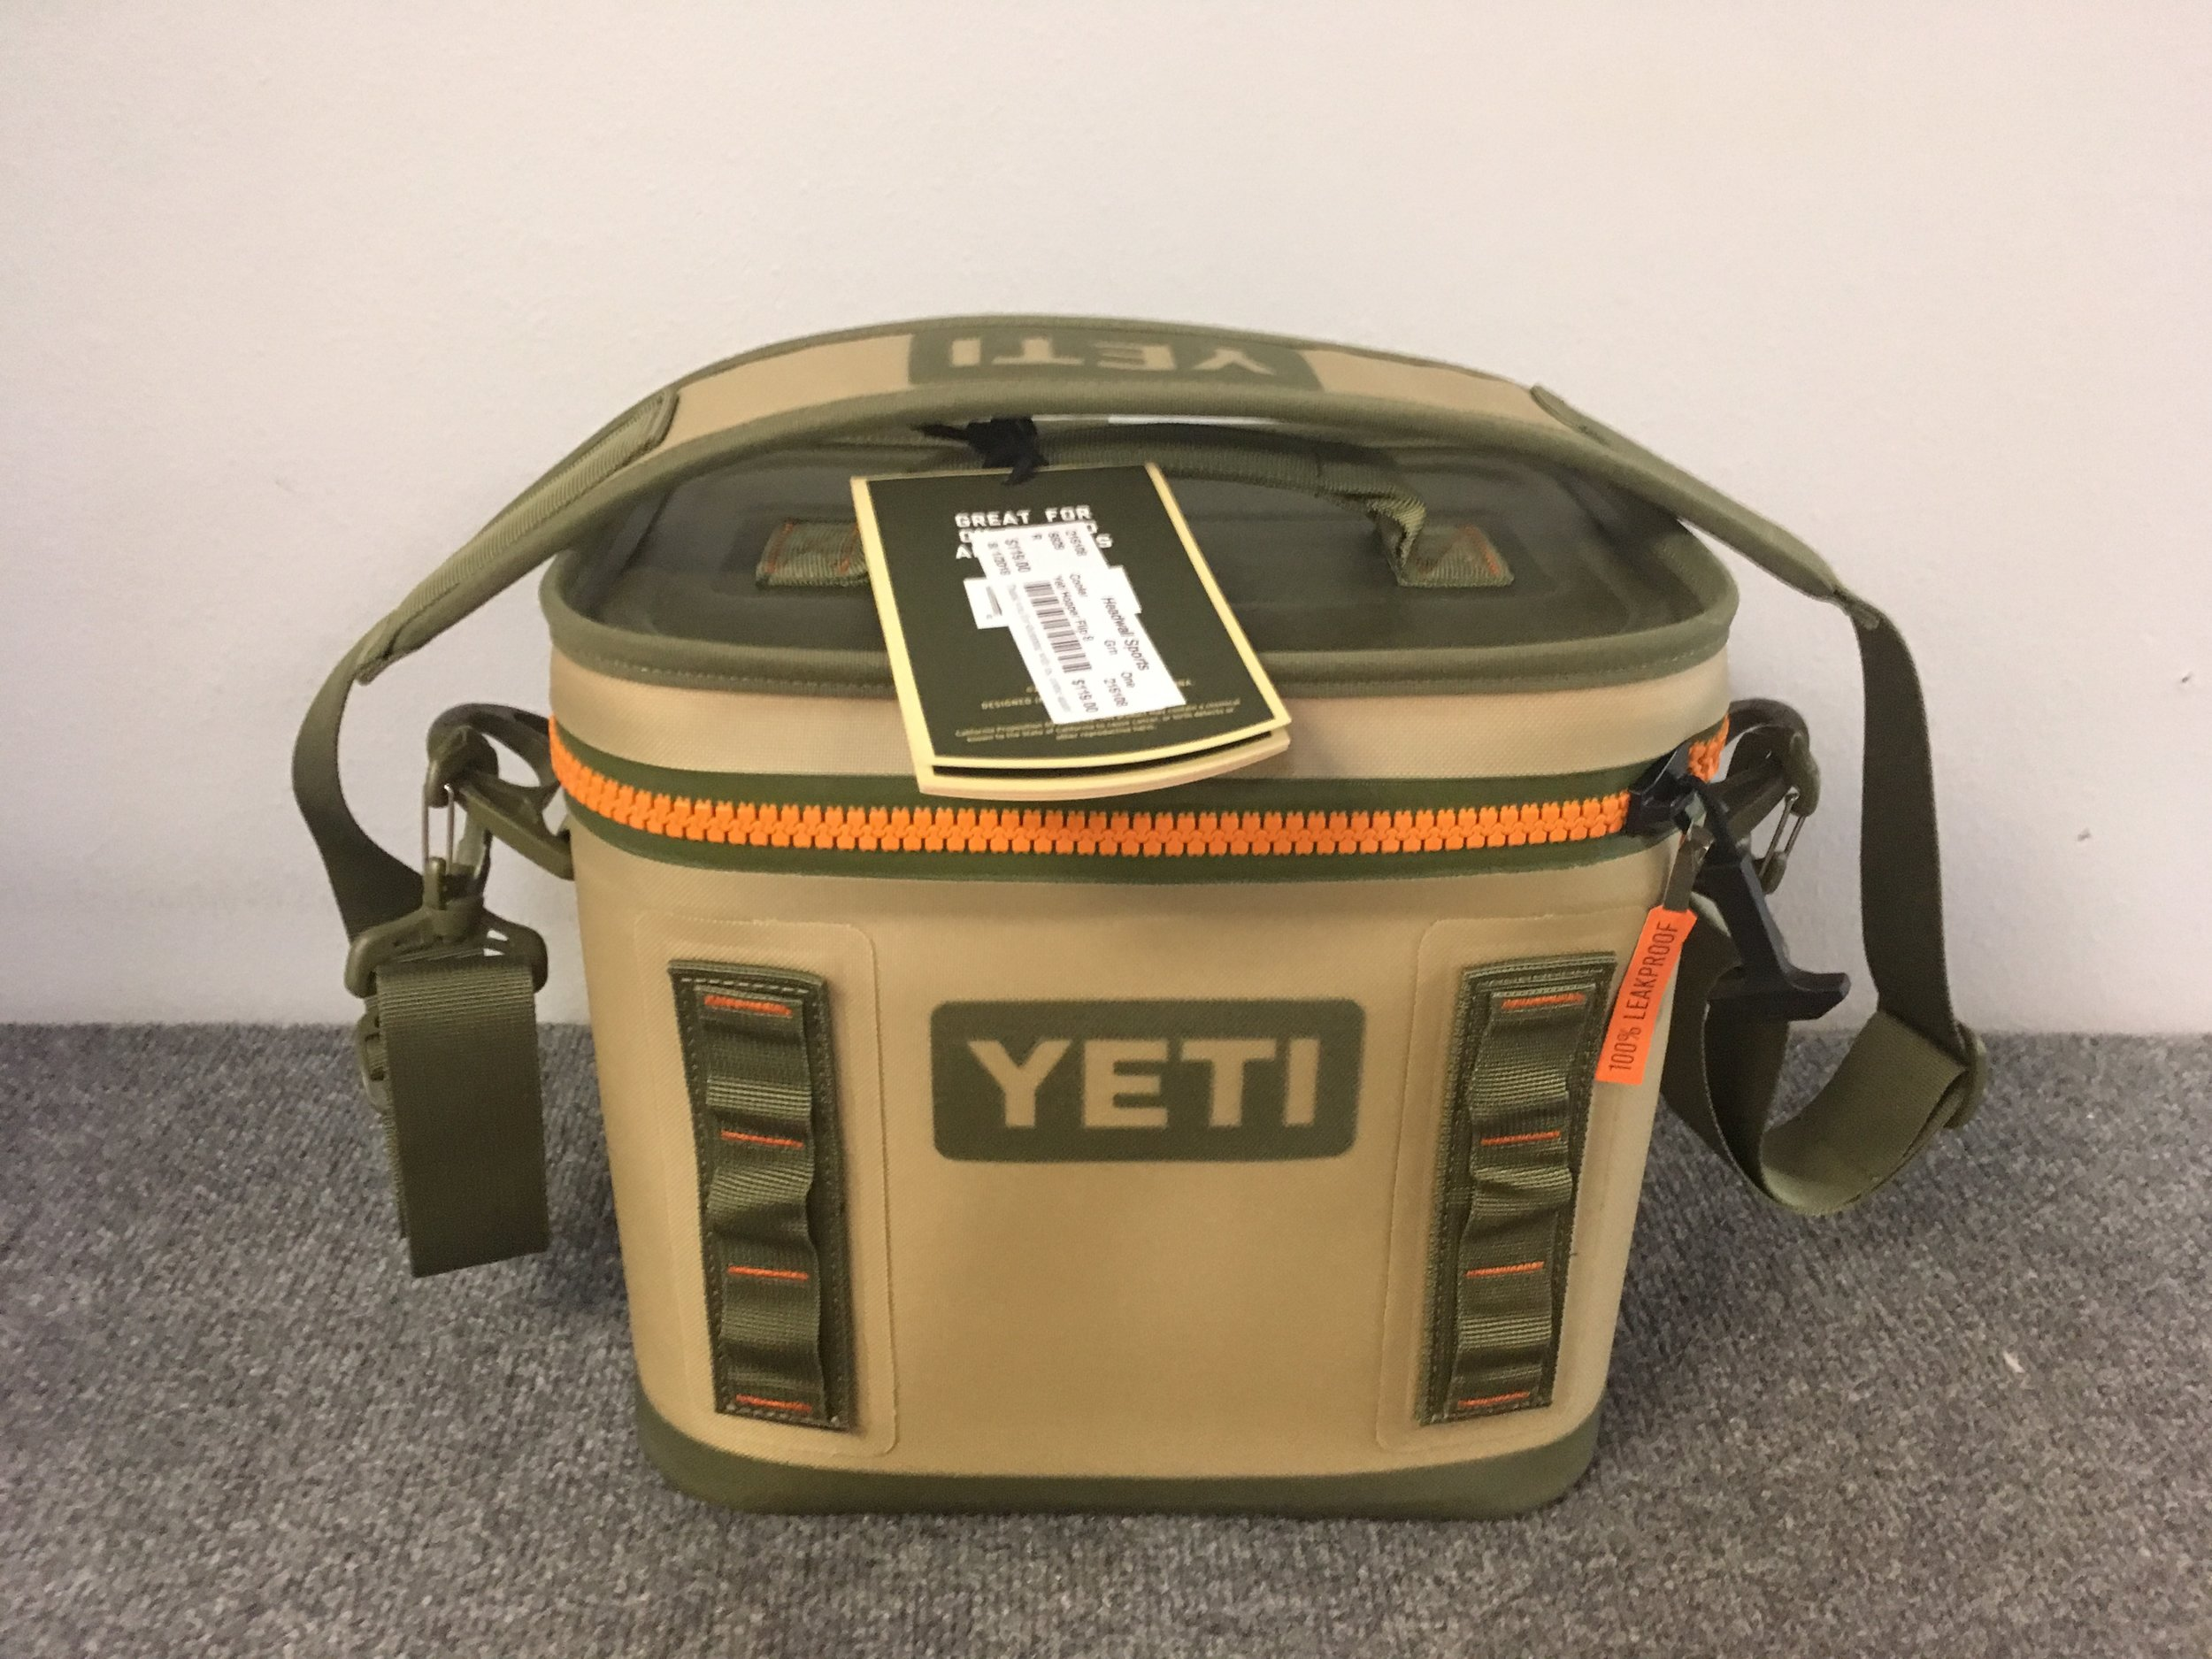 Keep your cans cold and safe with Yeti's Hopper Flip cooler. The Hopper is guaranteed leak-proof and is built with a Dryhide shell that resists mildew and punctures. Retail for the cooler is listed at $200 but we got you covered at $119!